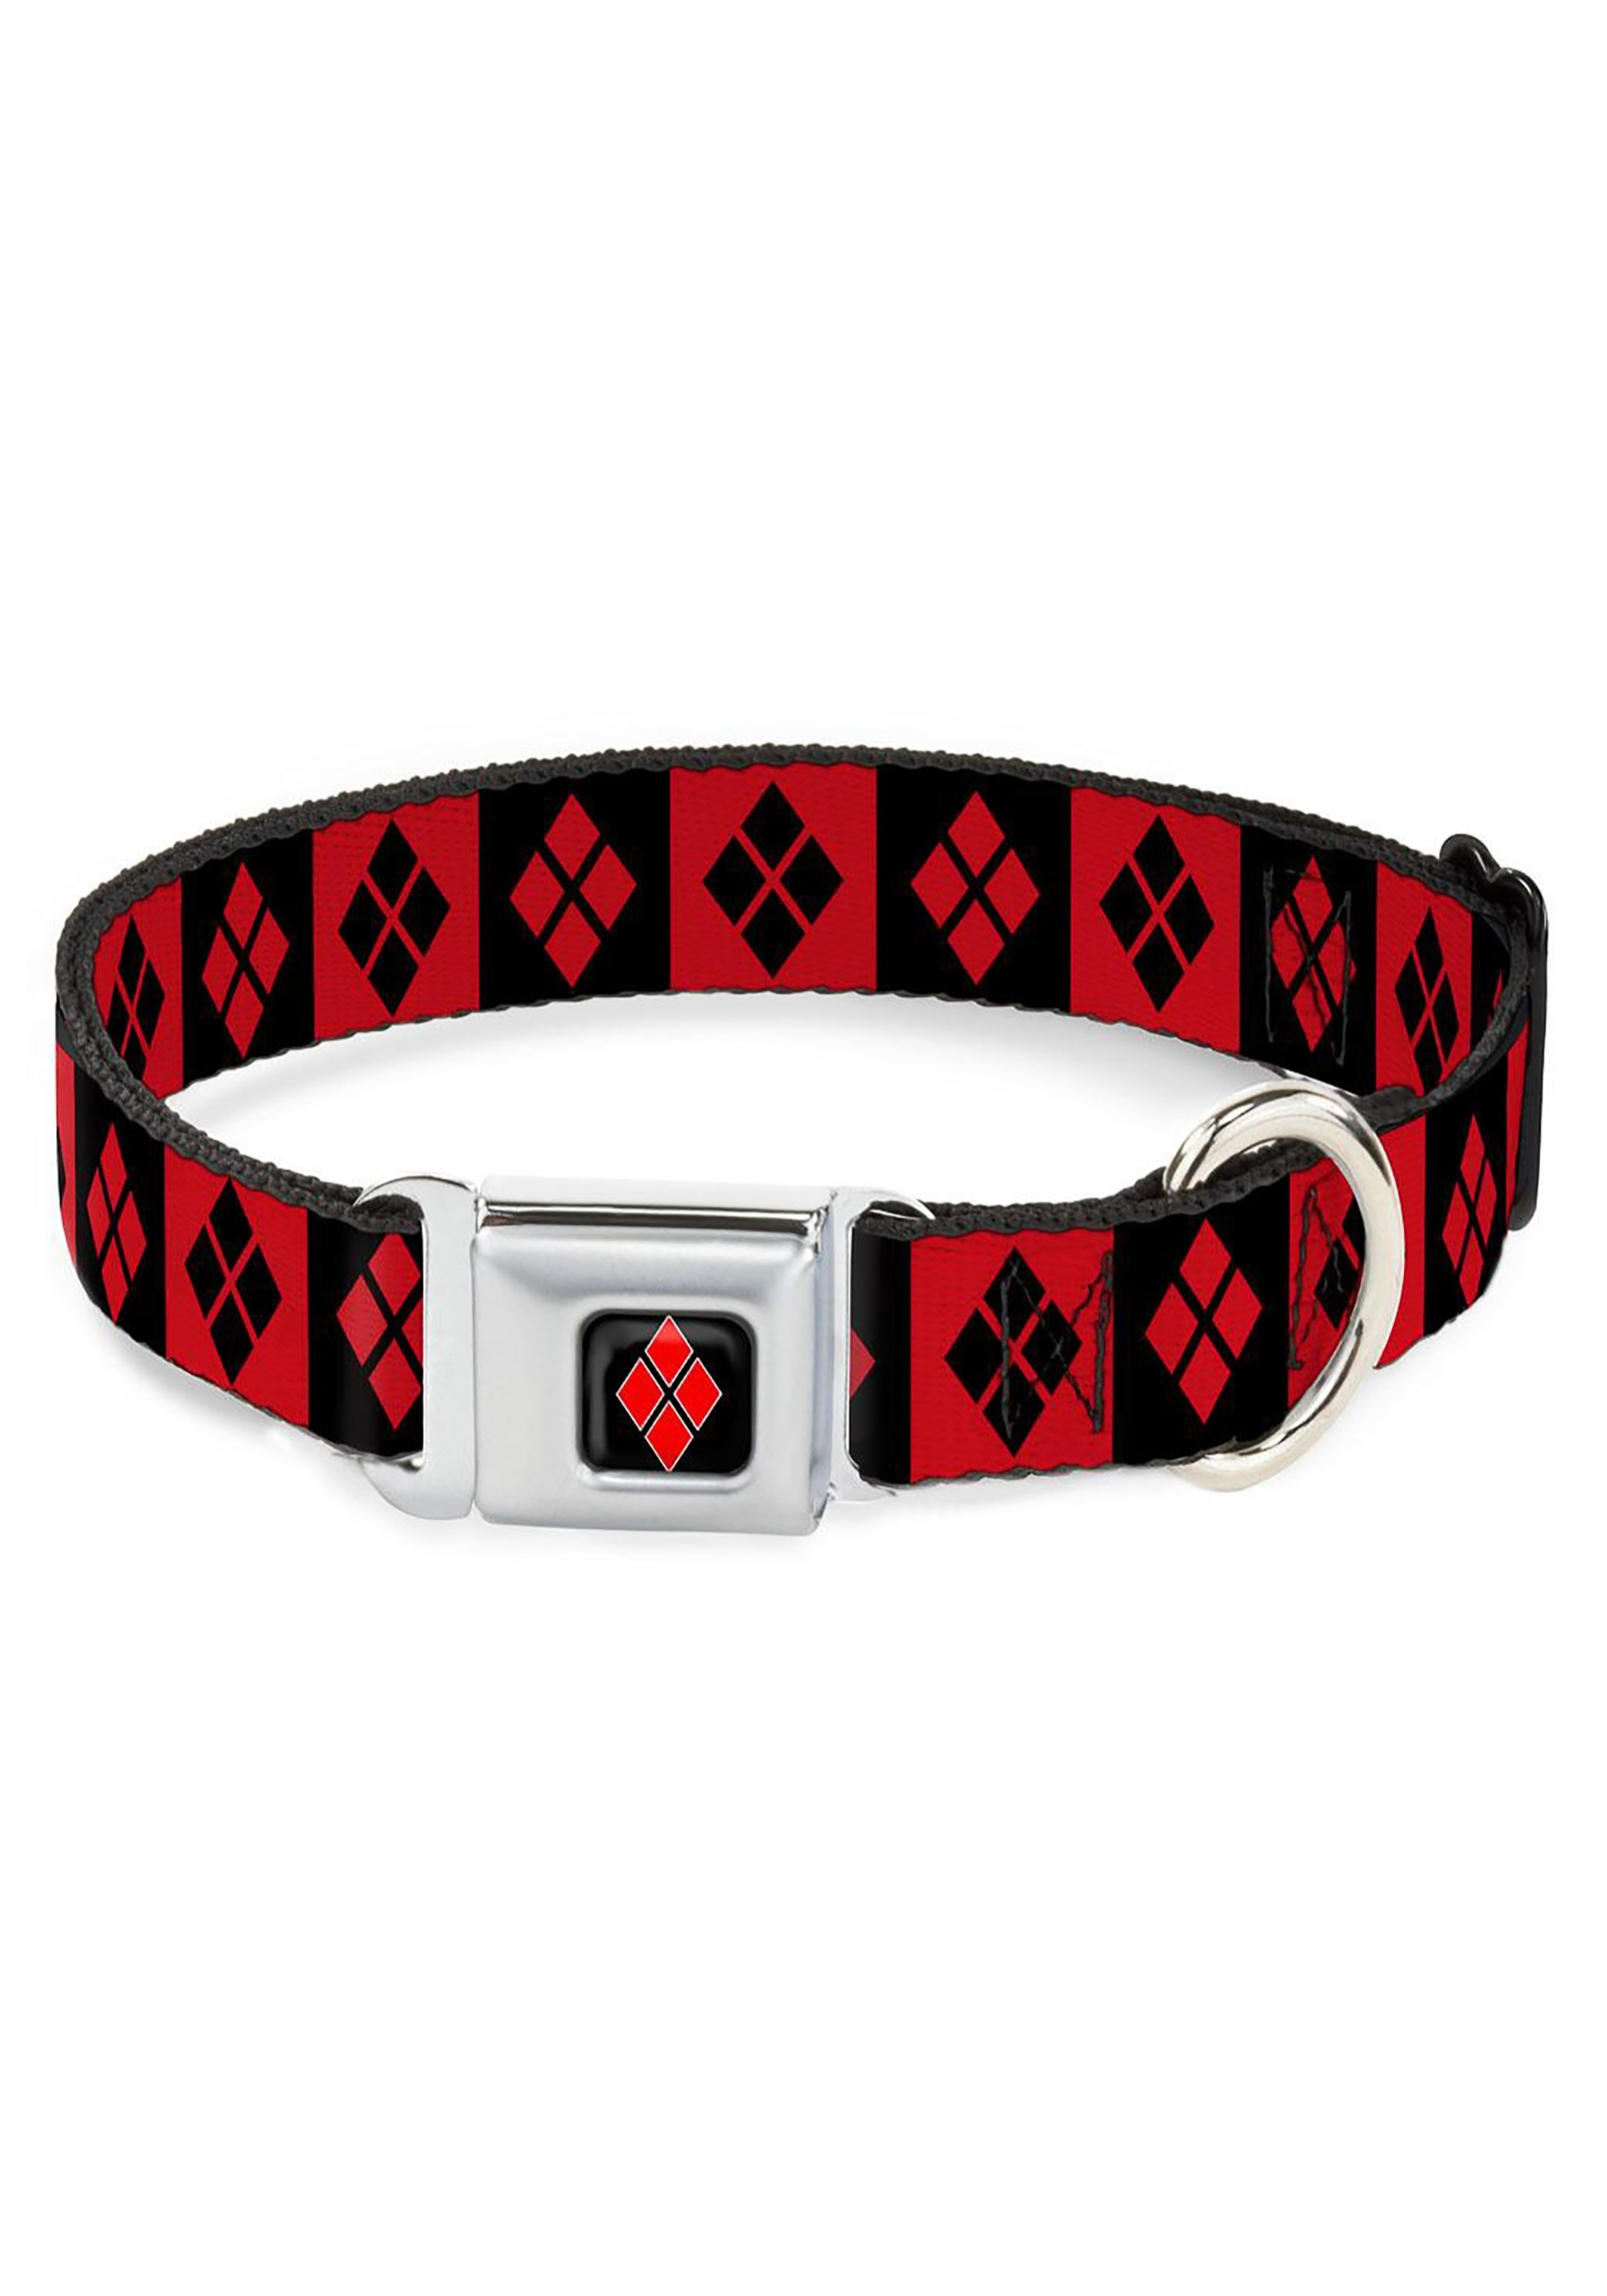 "Diamonds_Harley_Quinn_Red_Black_Seatbelt_Buckle_Dog_Collar-_1""_Wide"